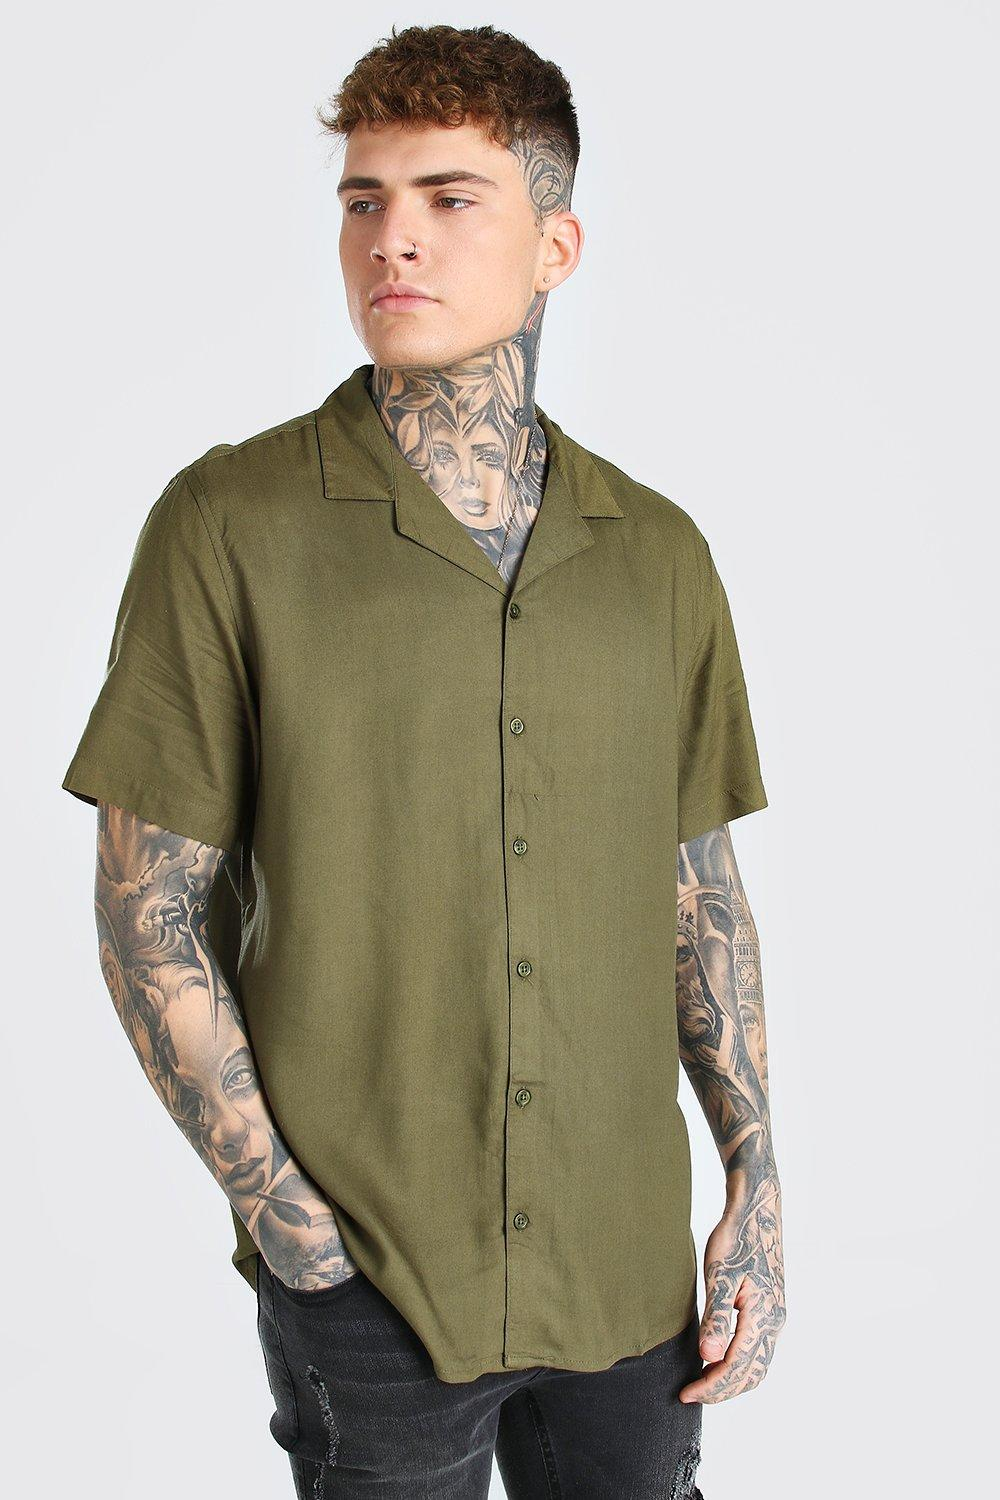 1940s UK and Europe Men's Clothing – WW2, Swing Dance, Goodwin Mens Short Sleeve Viscose Shirt With Revere Collar - Green $10.00 AT vintagedancer.com